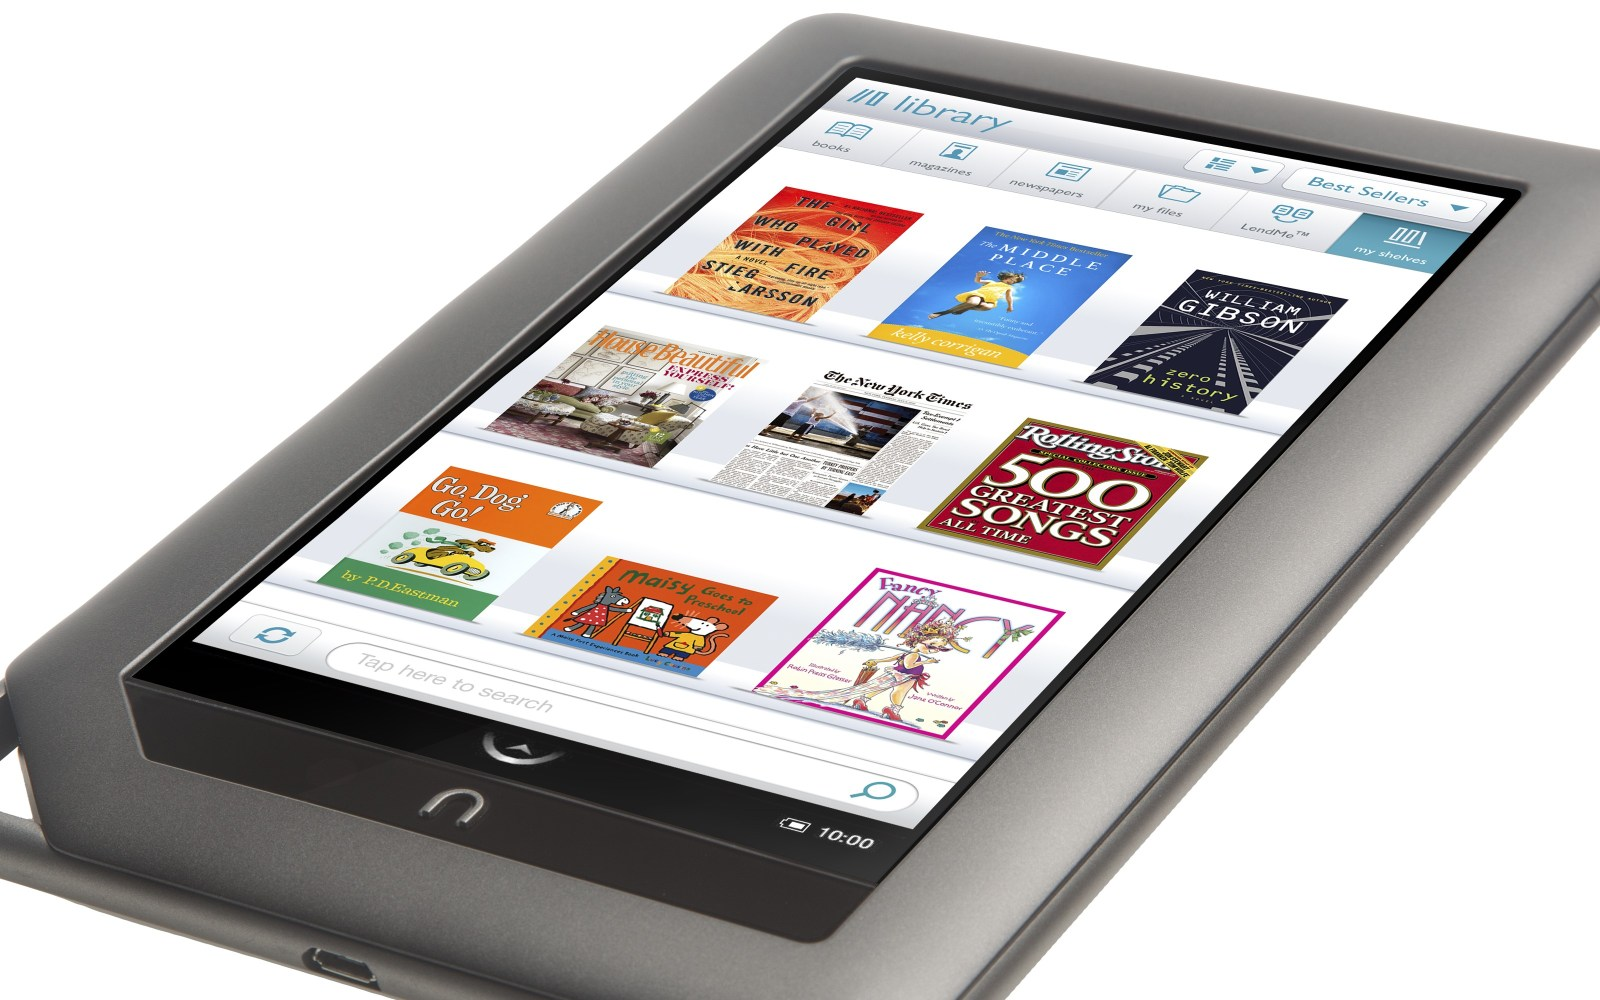 You can now bring your 2011 Nook Tablet back to life with CyanogenMod 13